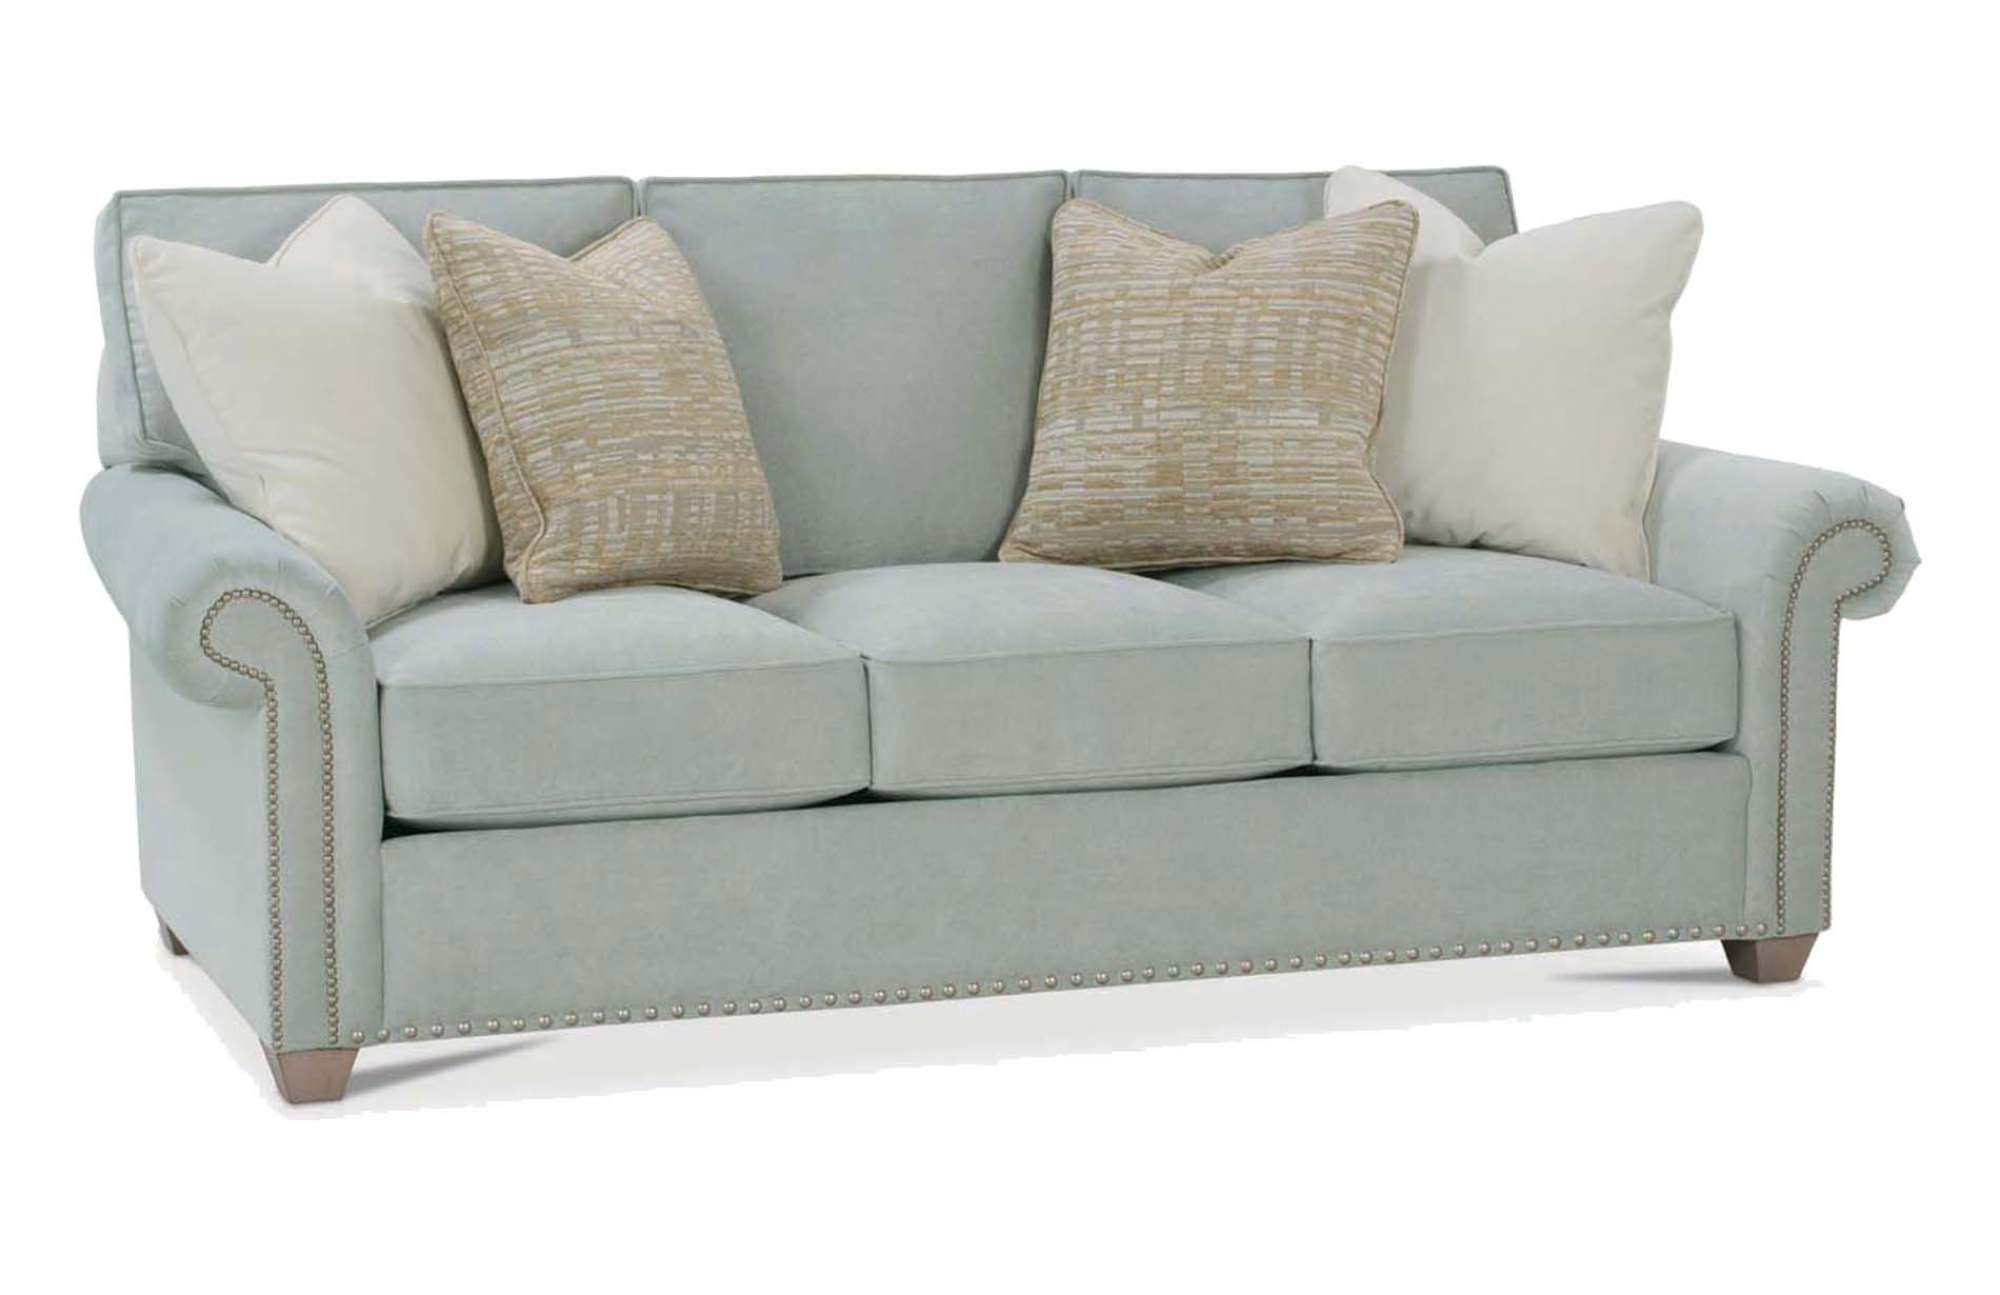 My Style II Sectional   Rowe Furniture, Rowe Furniture, Available At Holman  House Furniture In Grand Junction | Rowe Furniture | Pinterest | Apartment  ...